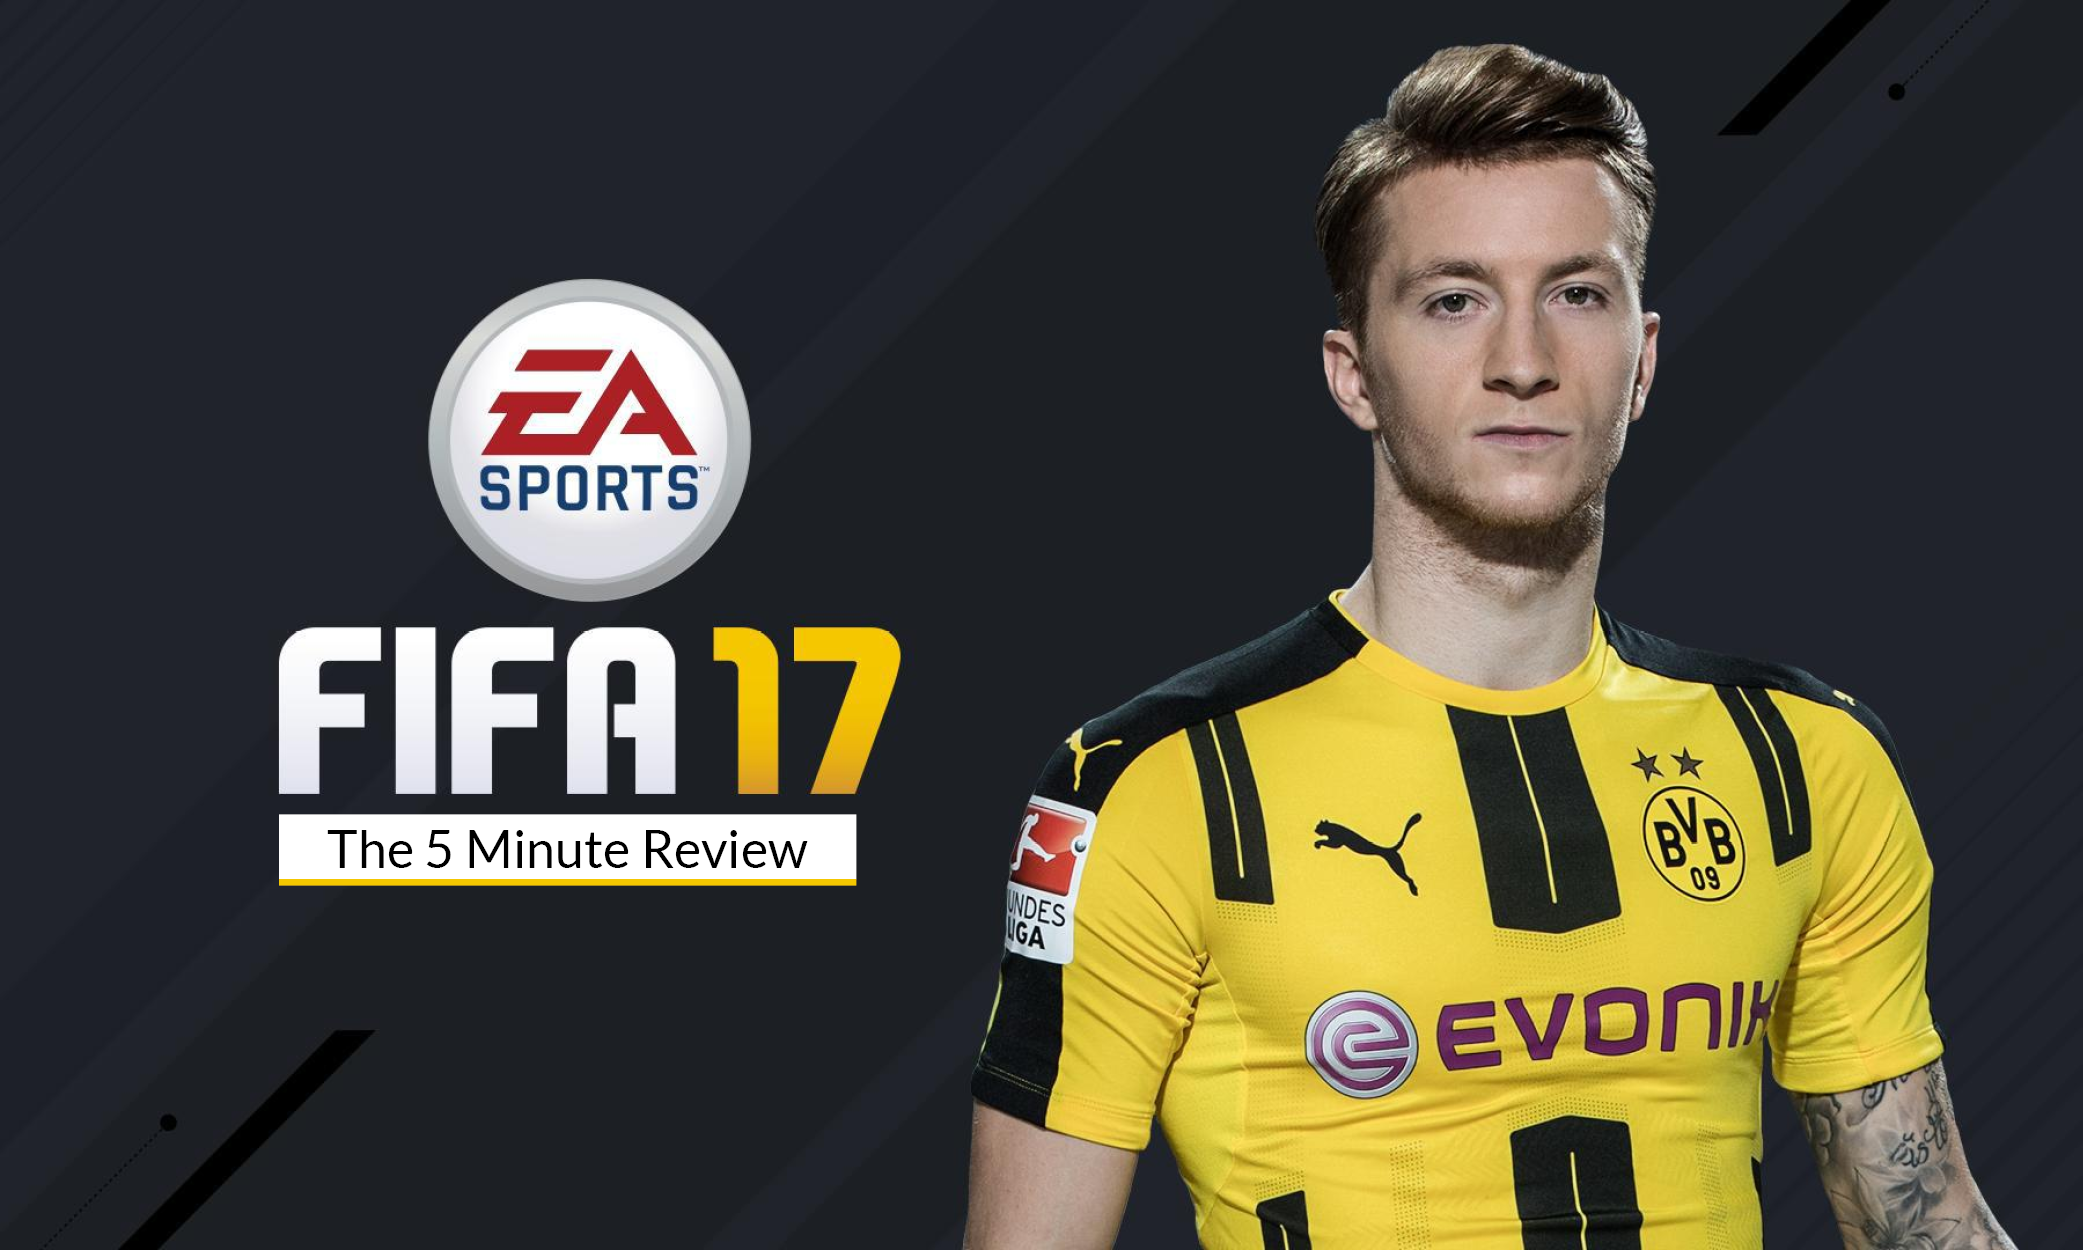 fifa 17 the 5 minute review gametraders usa. Black Bedroom Furniture Sets. Home Design Ideas